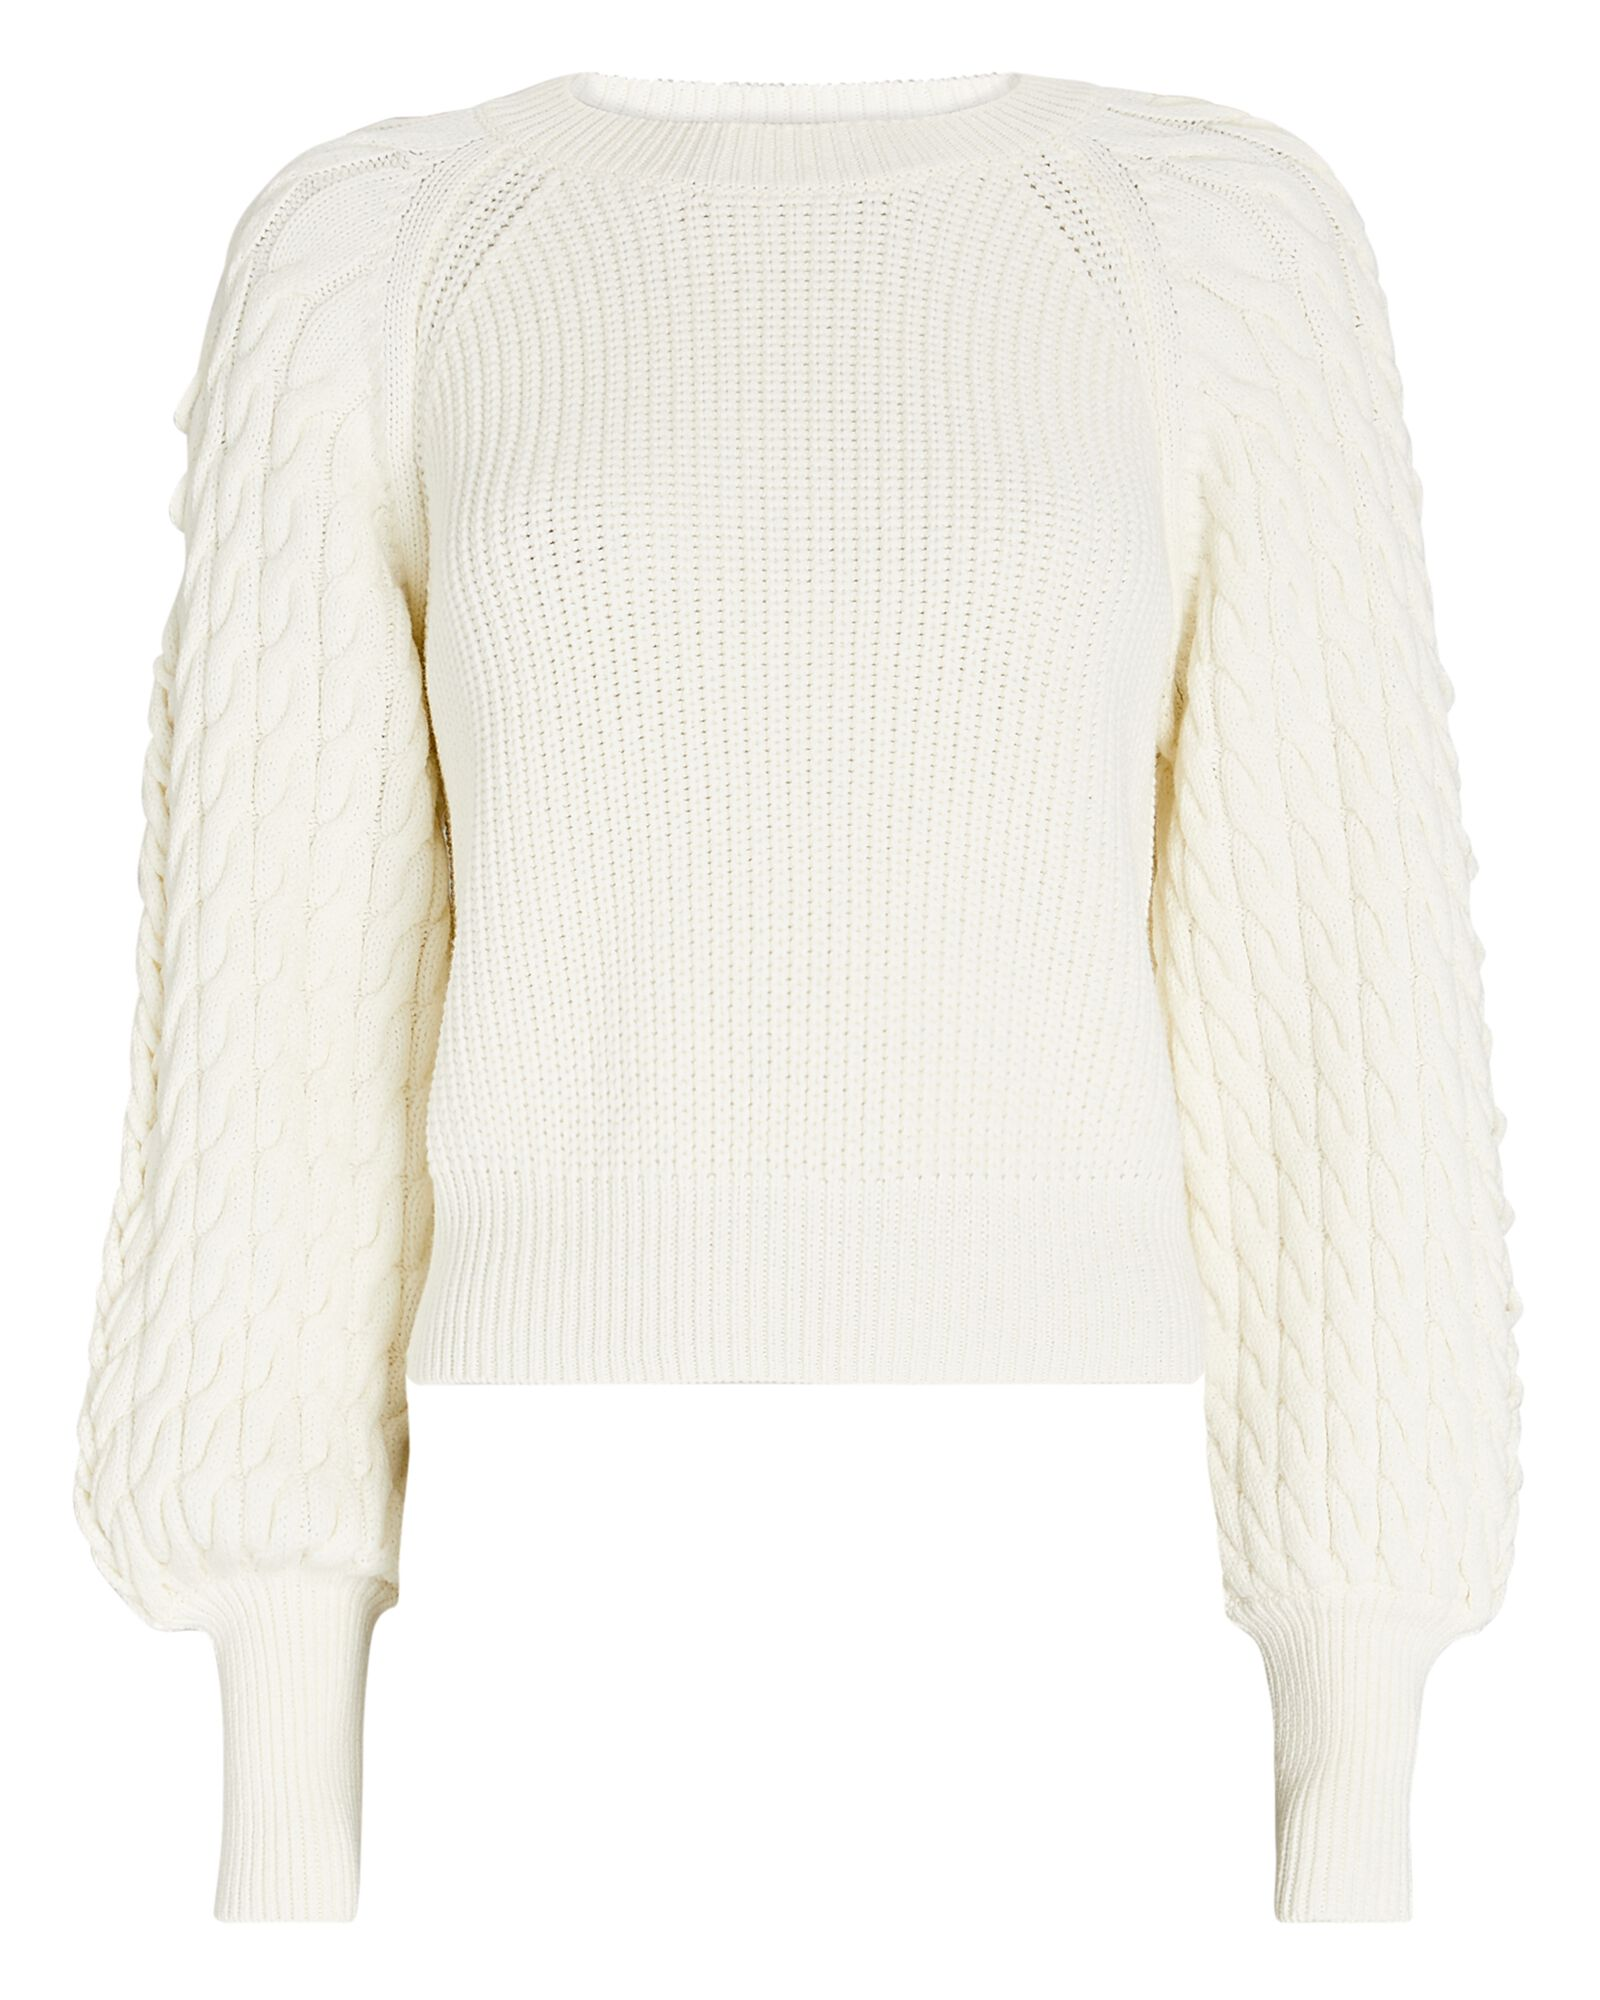 Lula Lace-Up Cable Knit Sweater, IVORY, hi-res